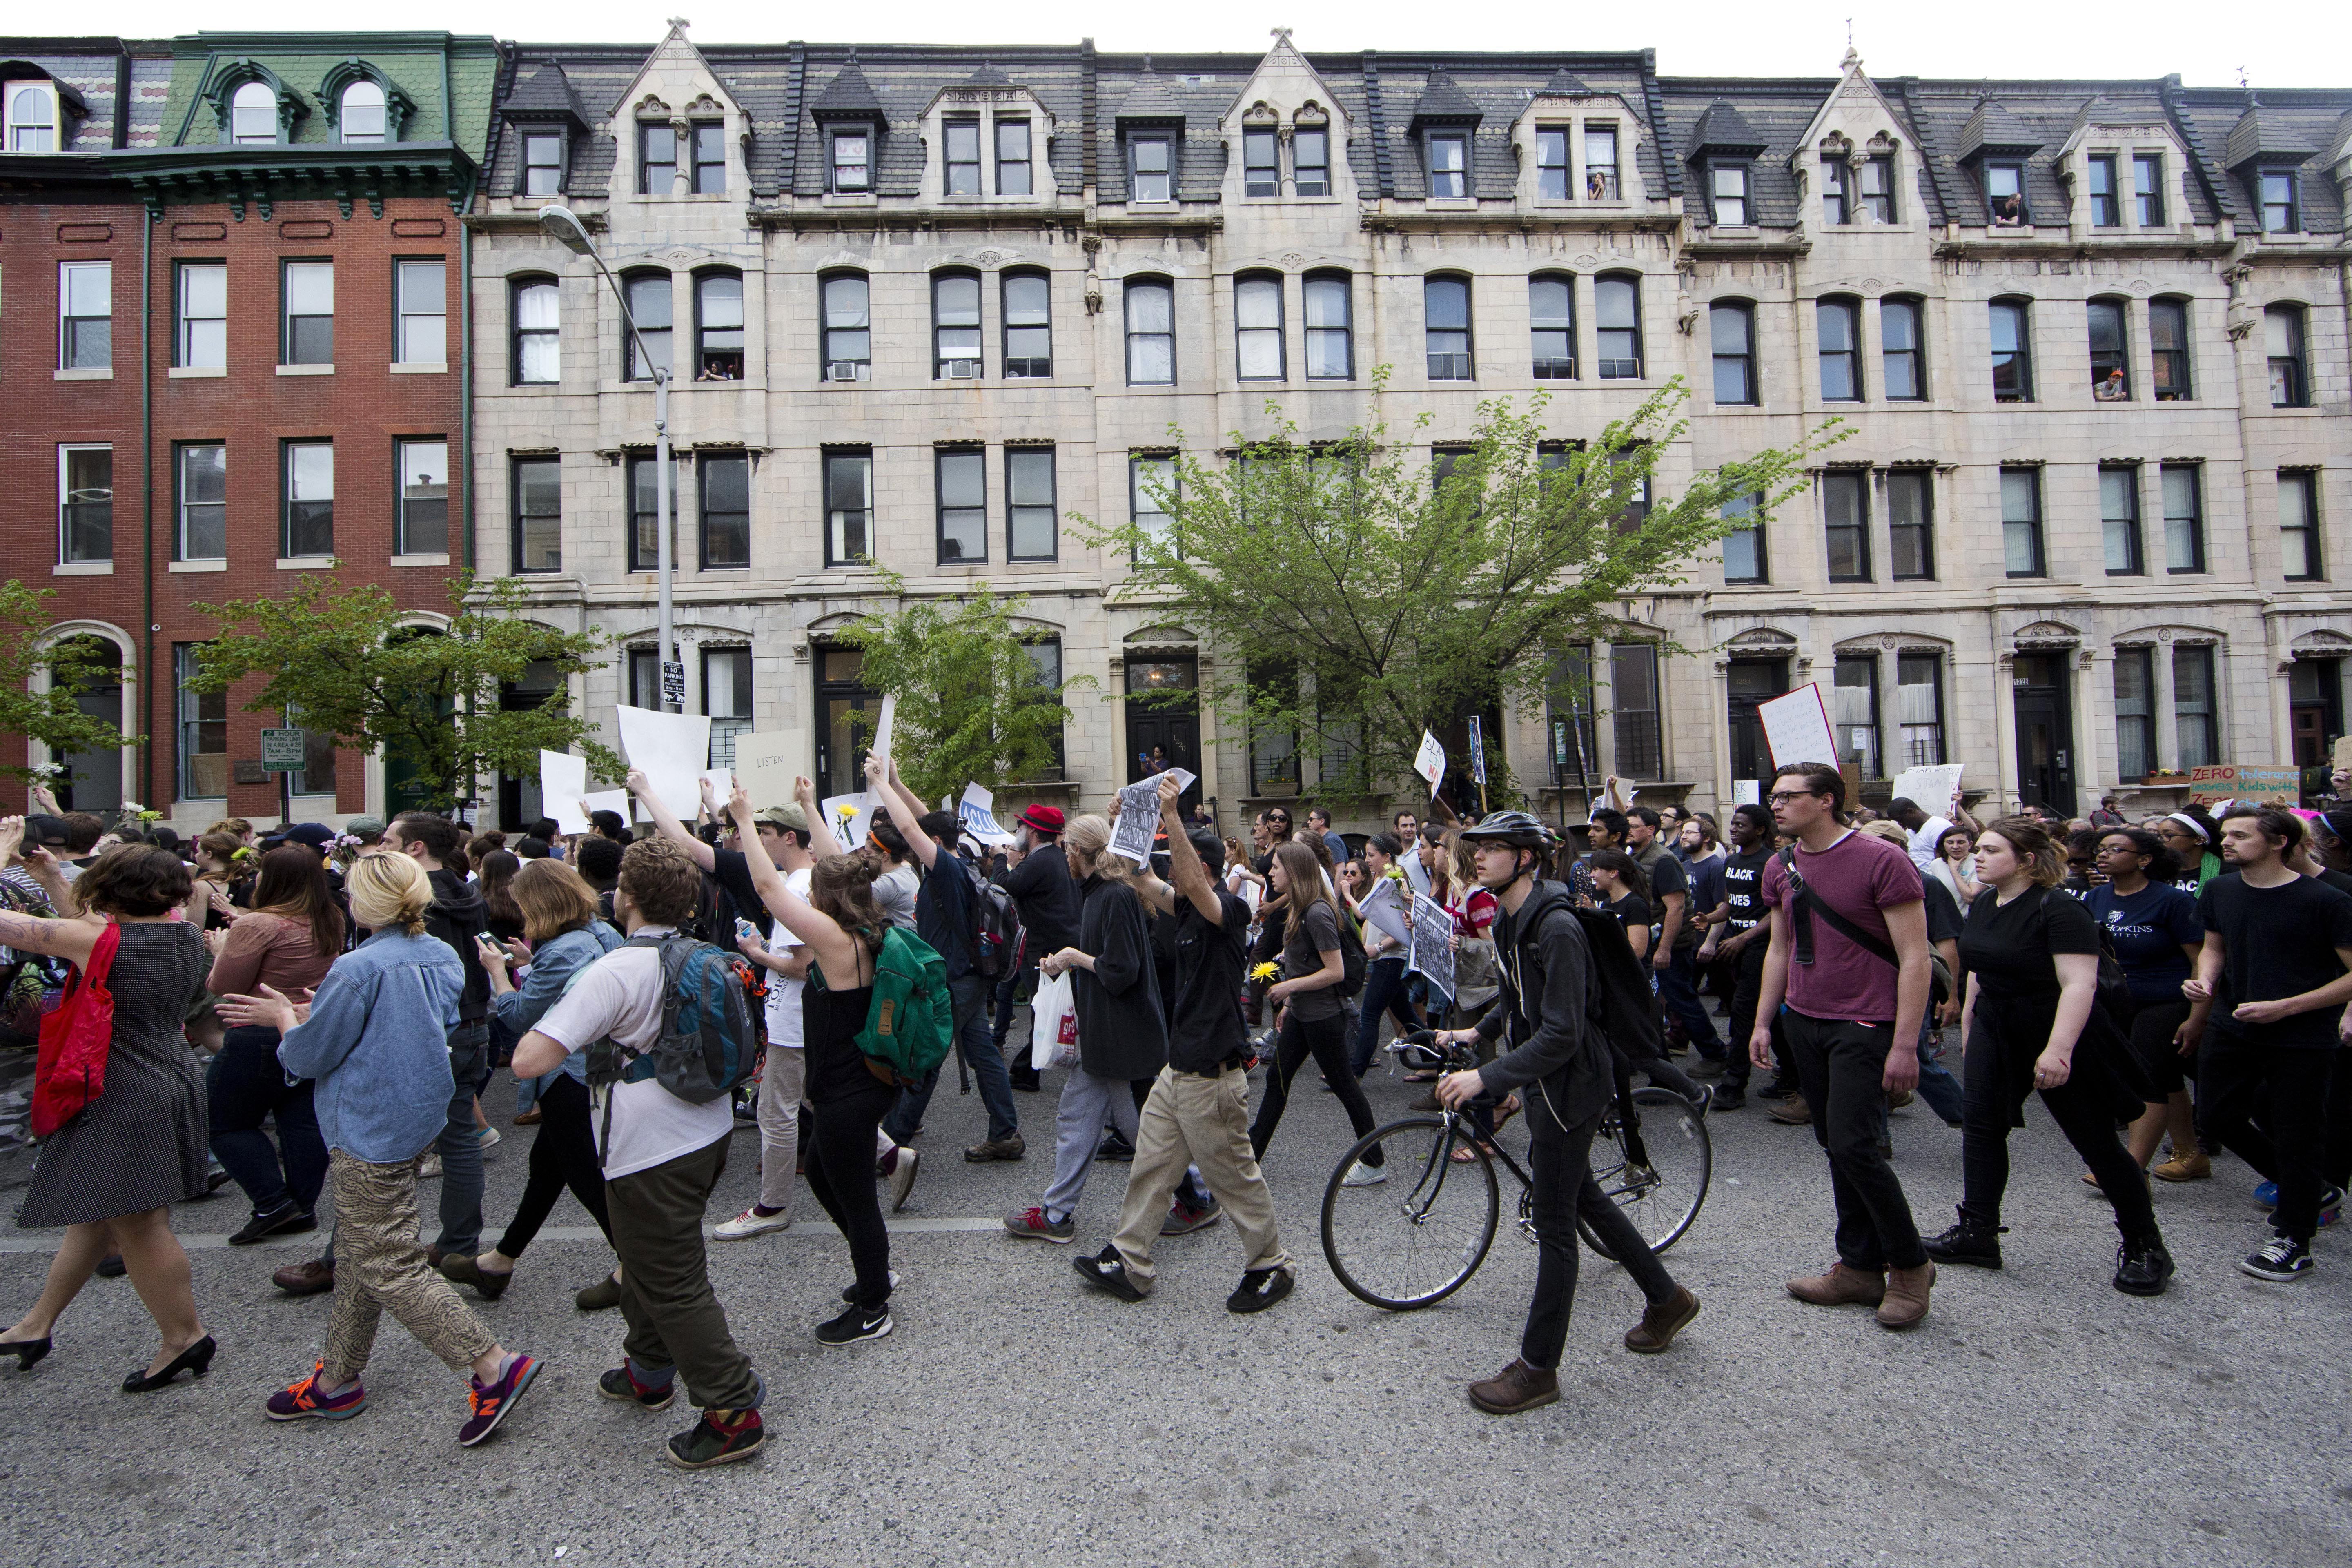 Baltimore Protesters Go Free as Arrest Paperwork Backs Up